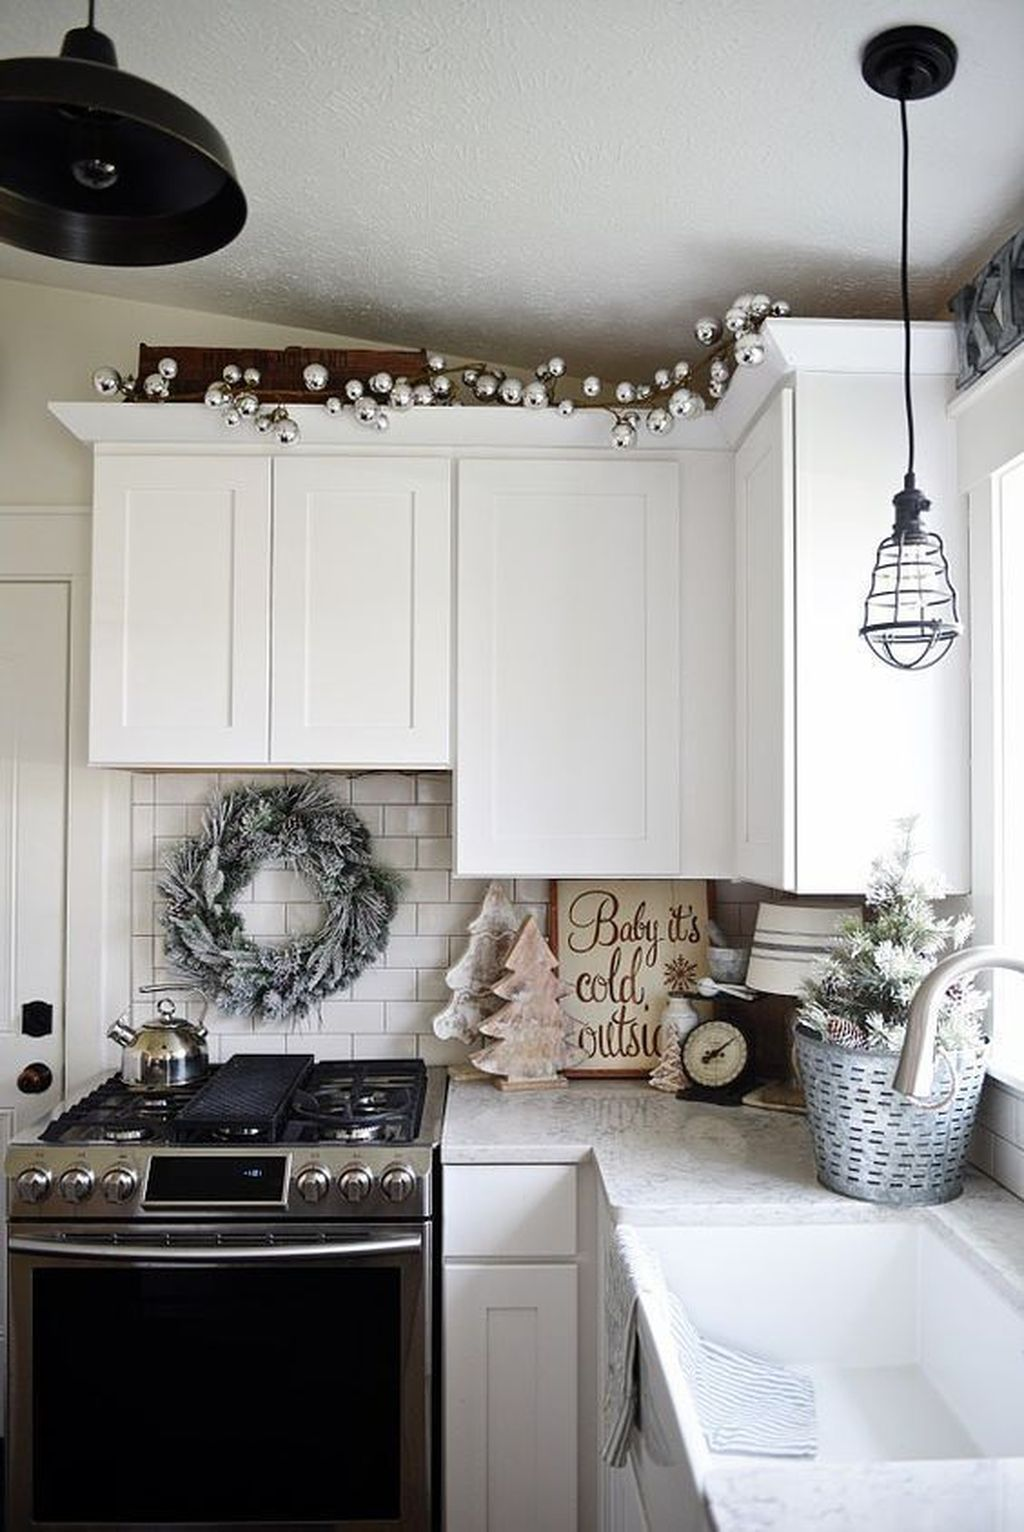 Inspiring Winter Kitchen Decor Ideas You Can Try 22